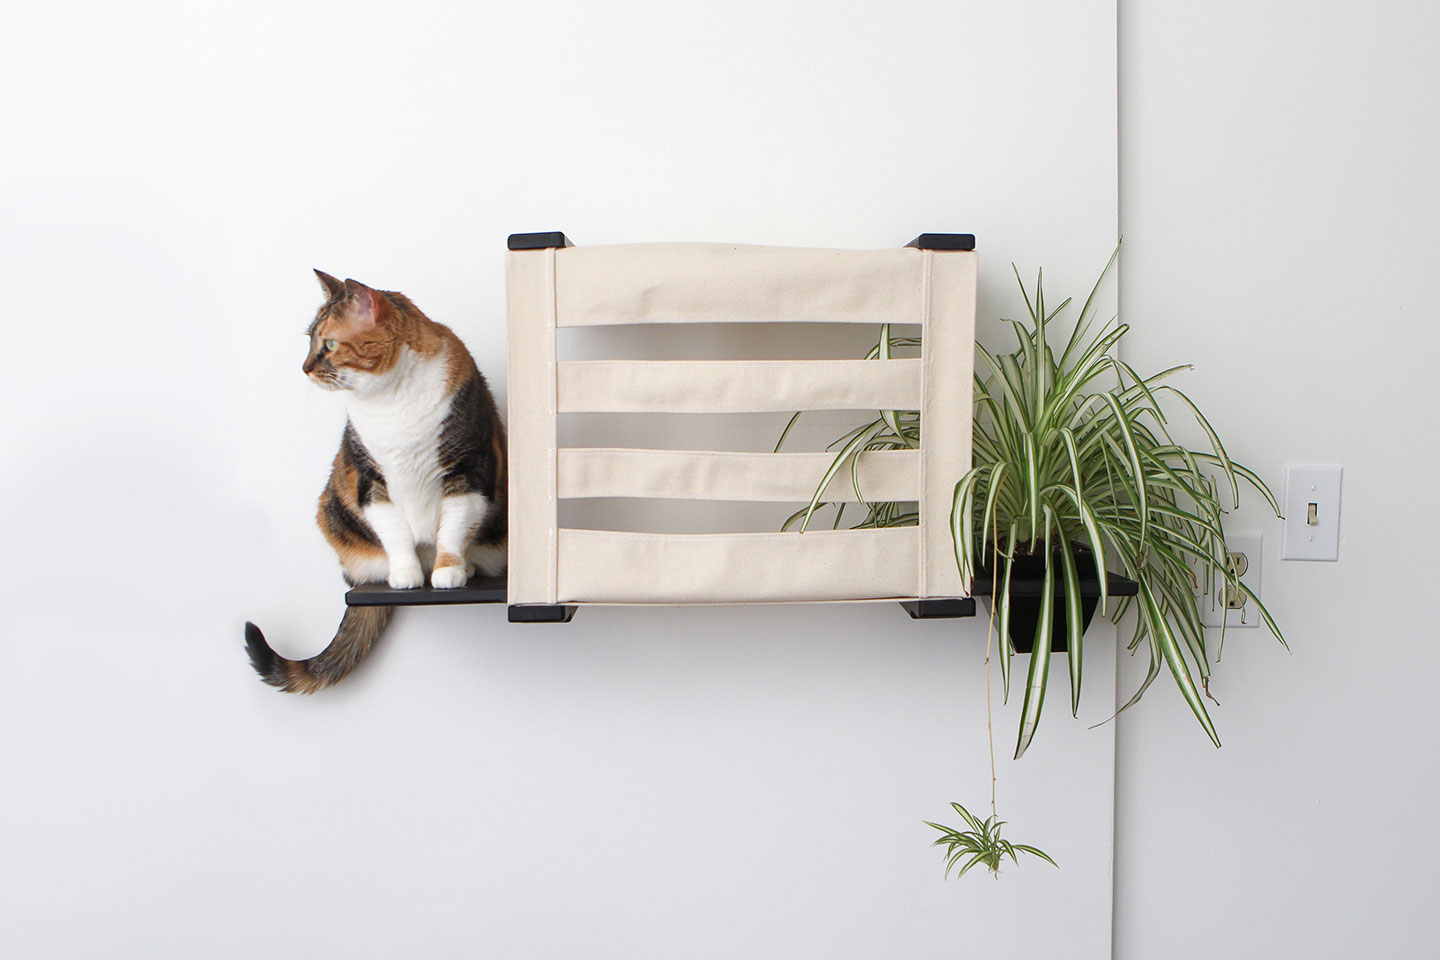 Wall mounted cat tunnel cubby with planter and ledges tabby cat relaxing on ledge